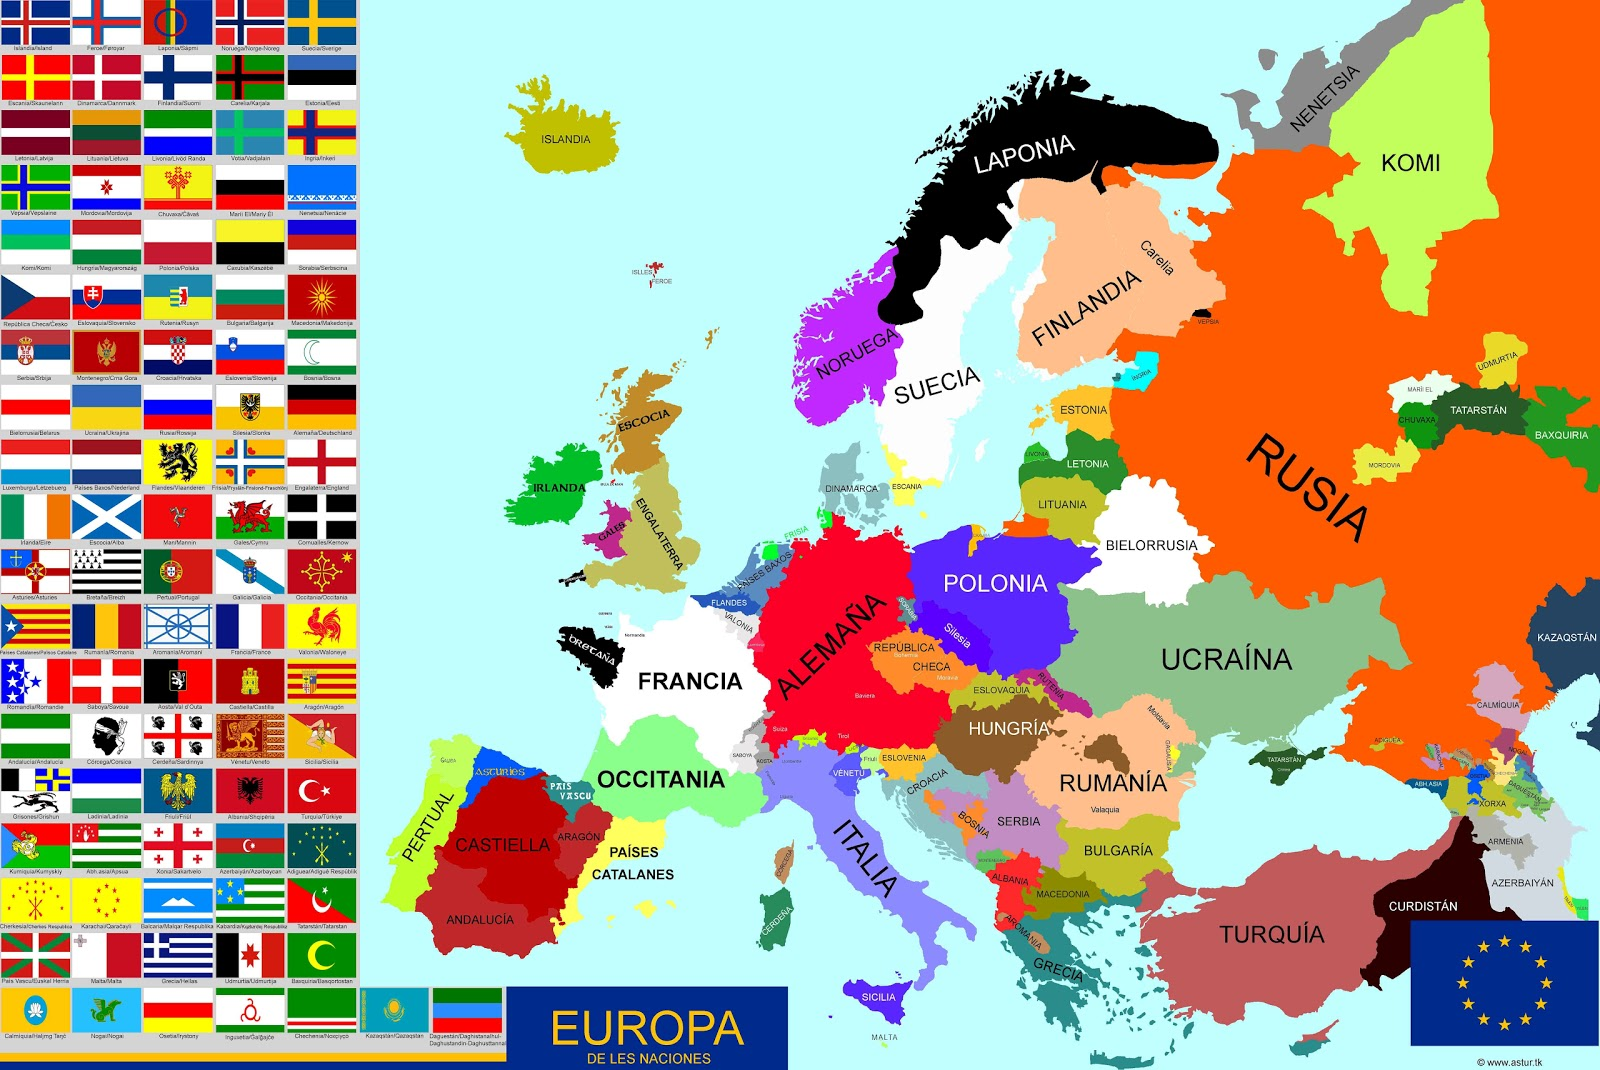 Ethnic groups in Europe - Page 2